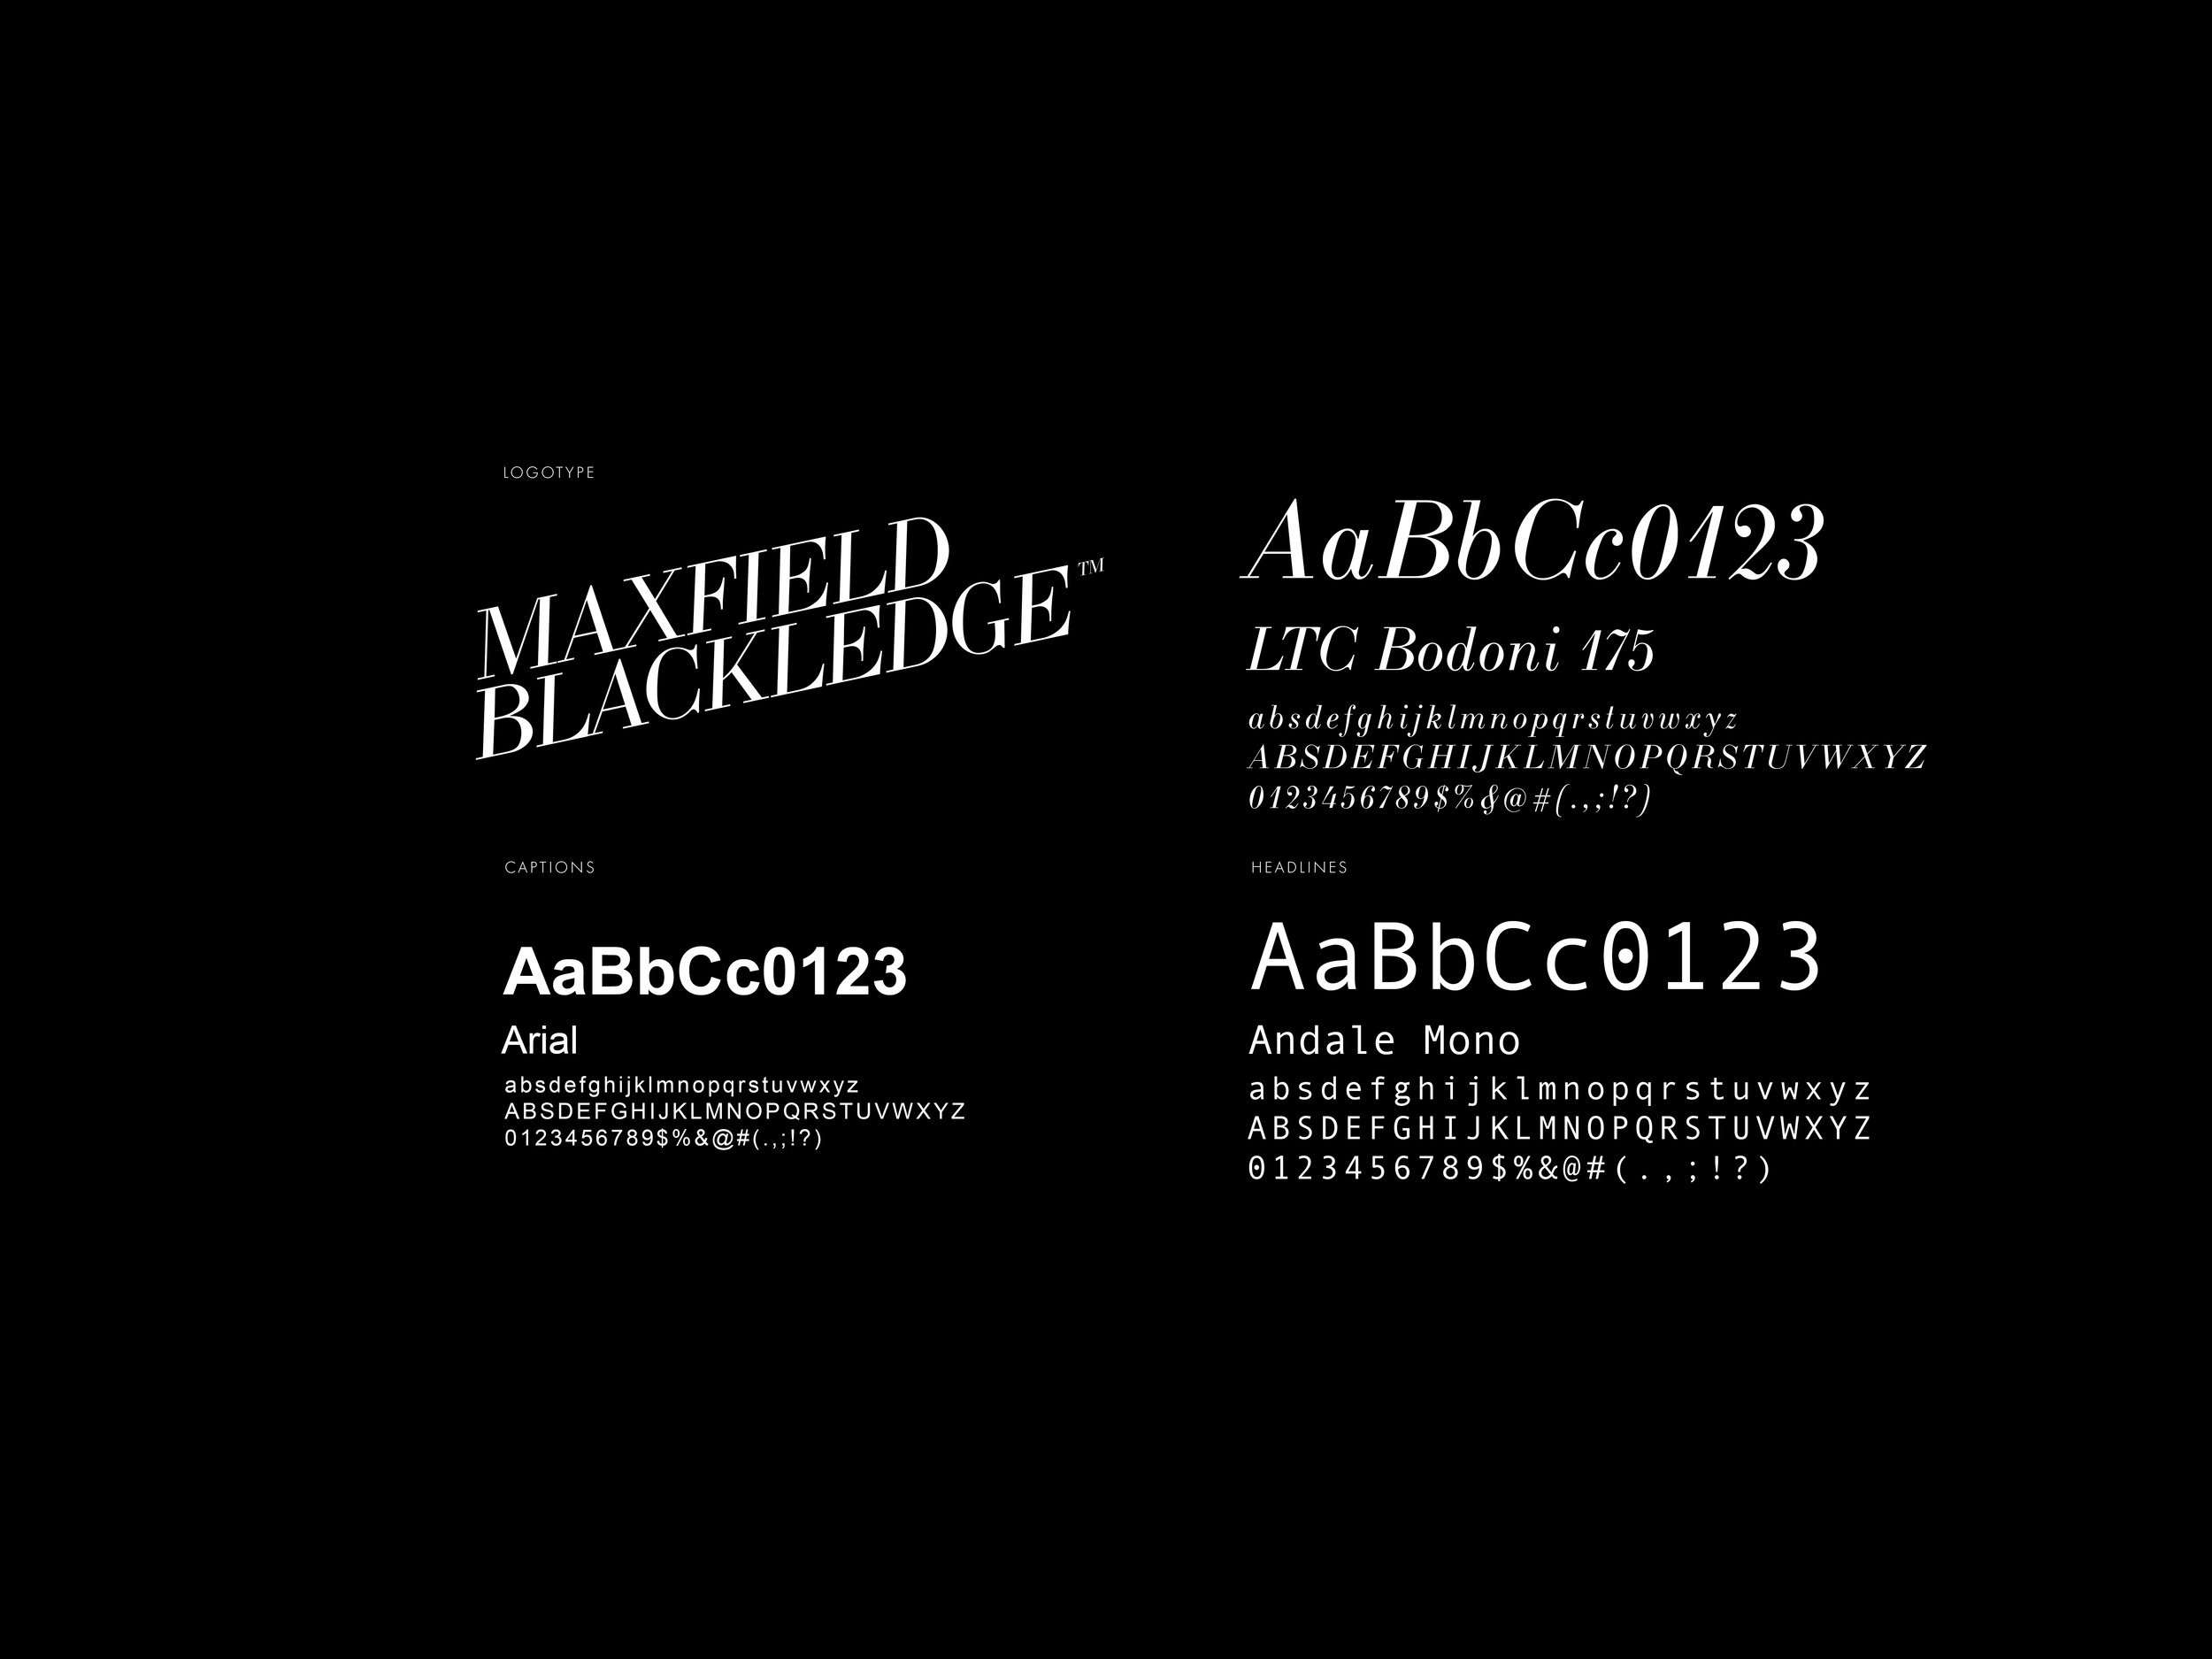 mbp_color and type.jpg